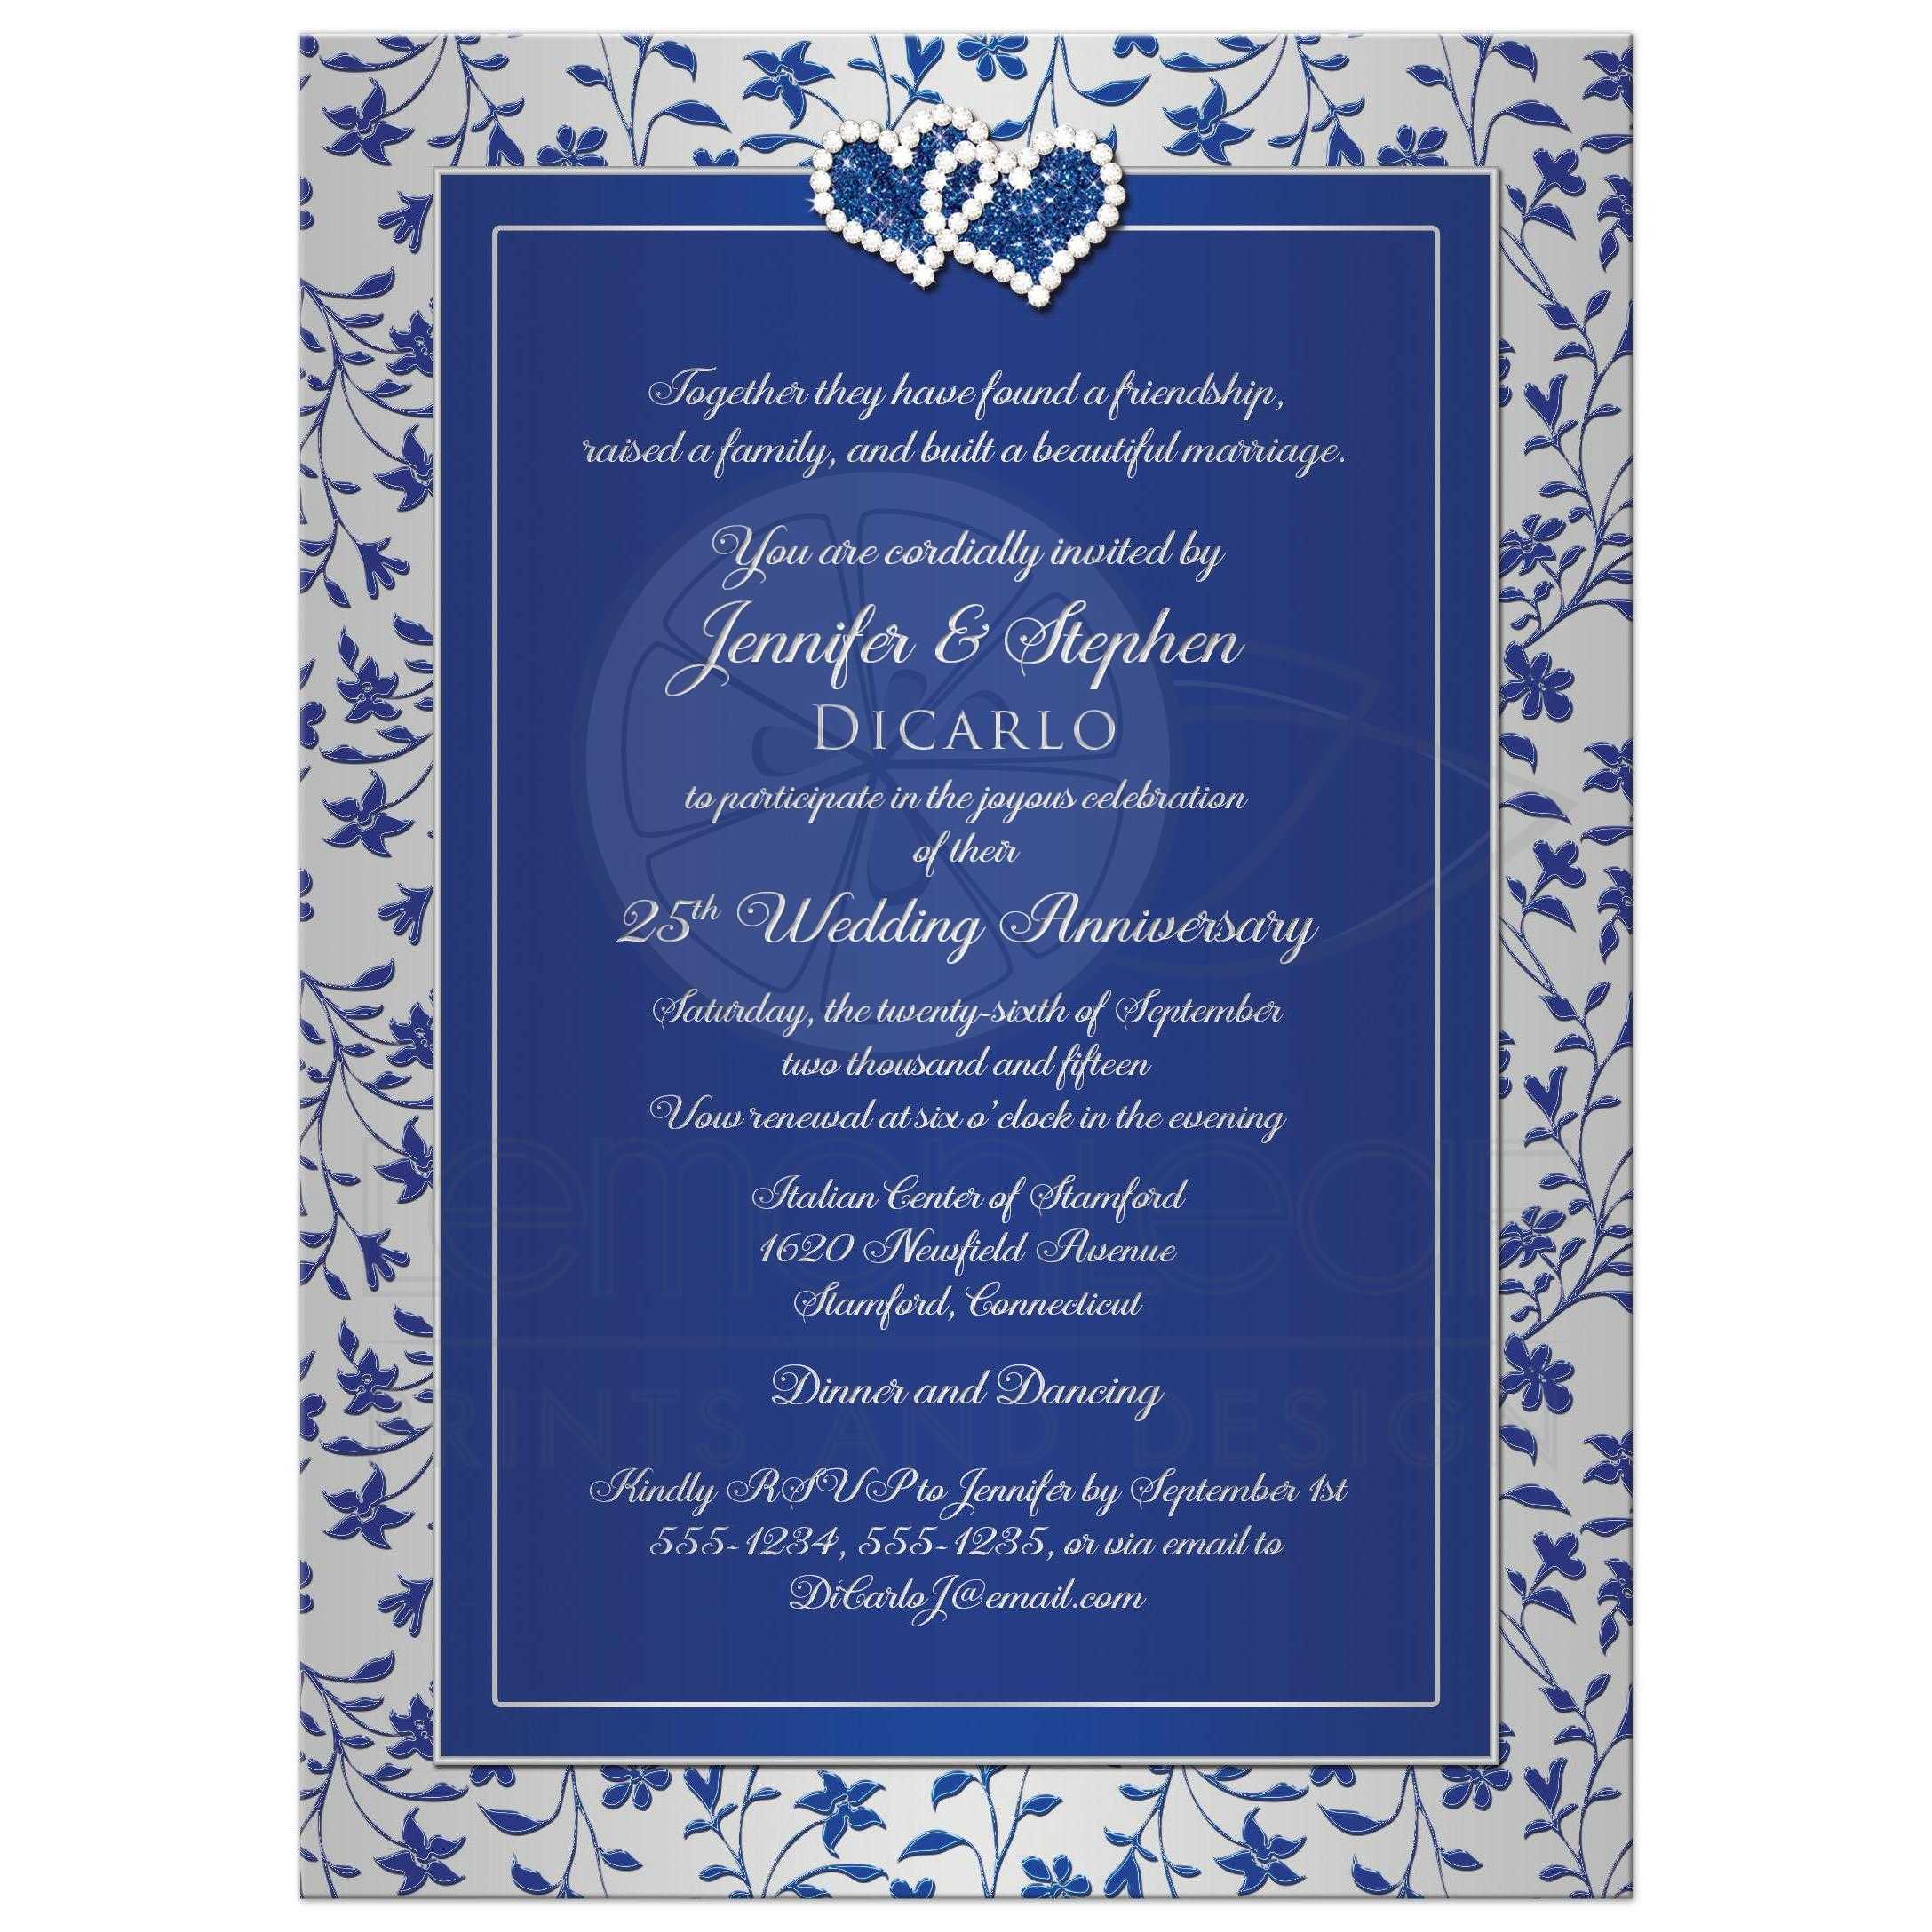 25th Wedding Anniversary Invitation In Royal Blue And Silver ...